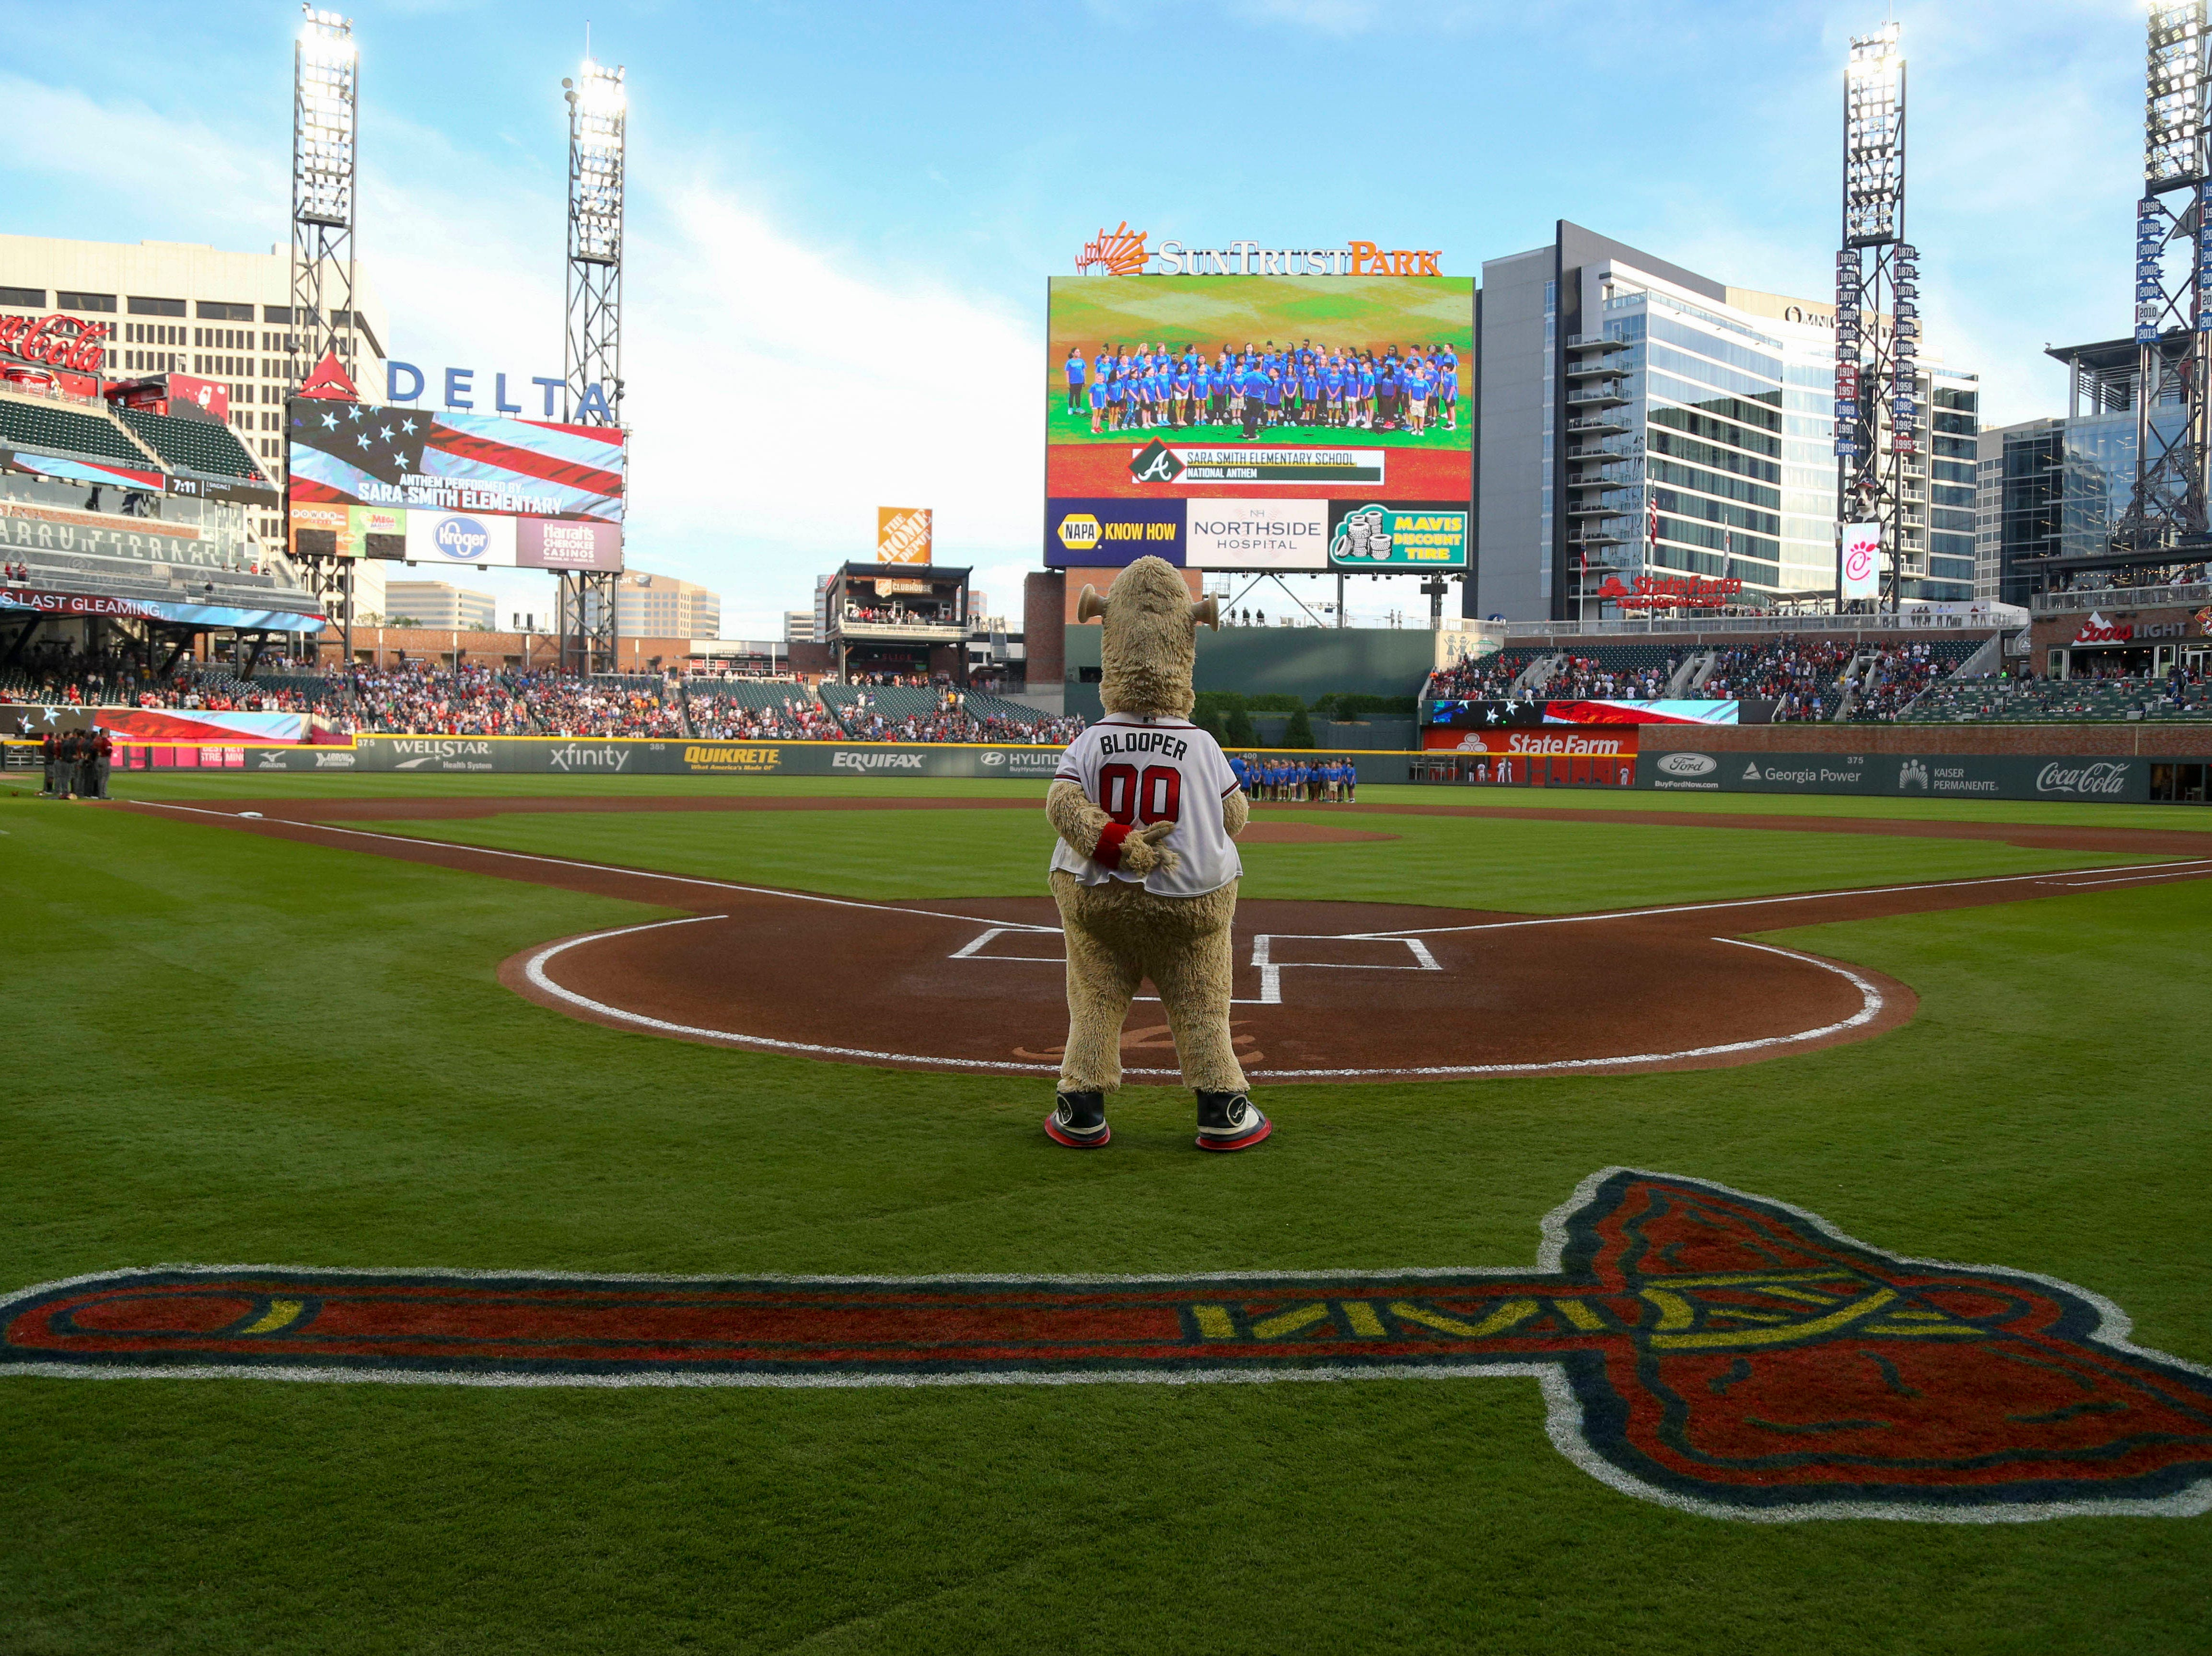 Apr 17, 2019; Atlanta, GA, USA; Atlanta Braves mascot Blooper stands during the national anthem before a game against the Arizona Diamondbacks at SunTrust Park. Mandatory Credit: Brett Davis-USA TODAY Sports